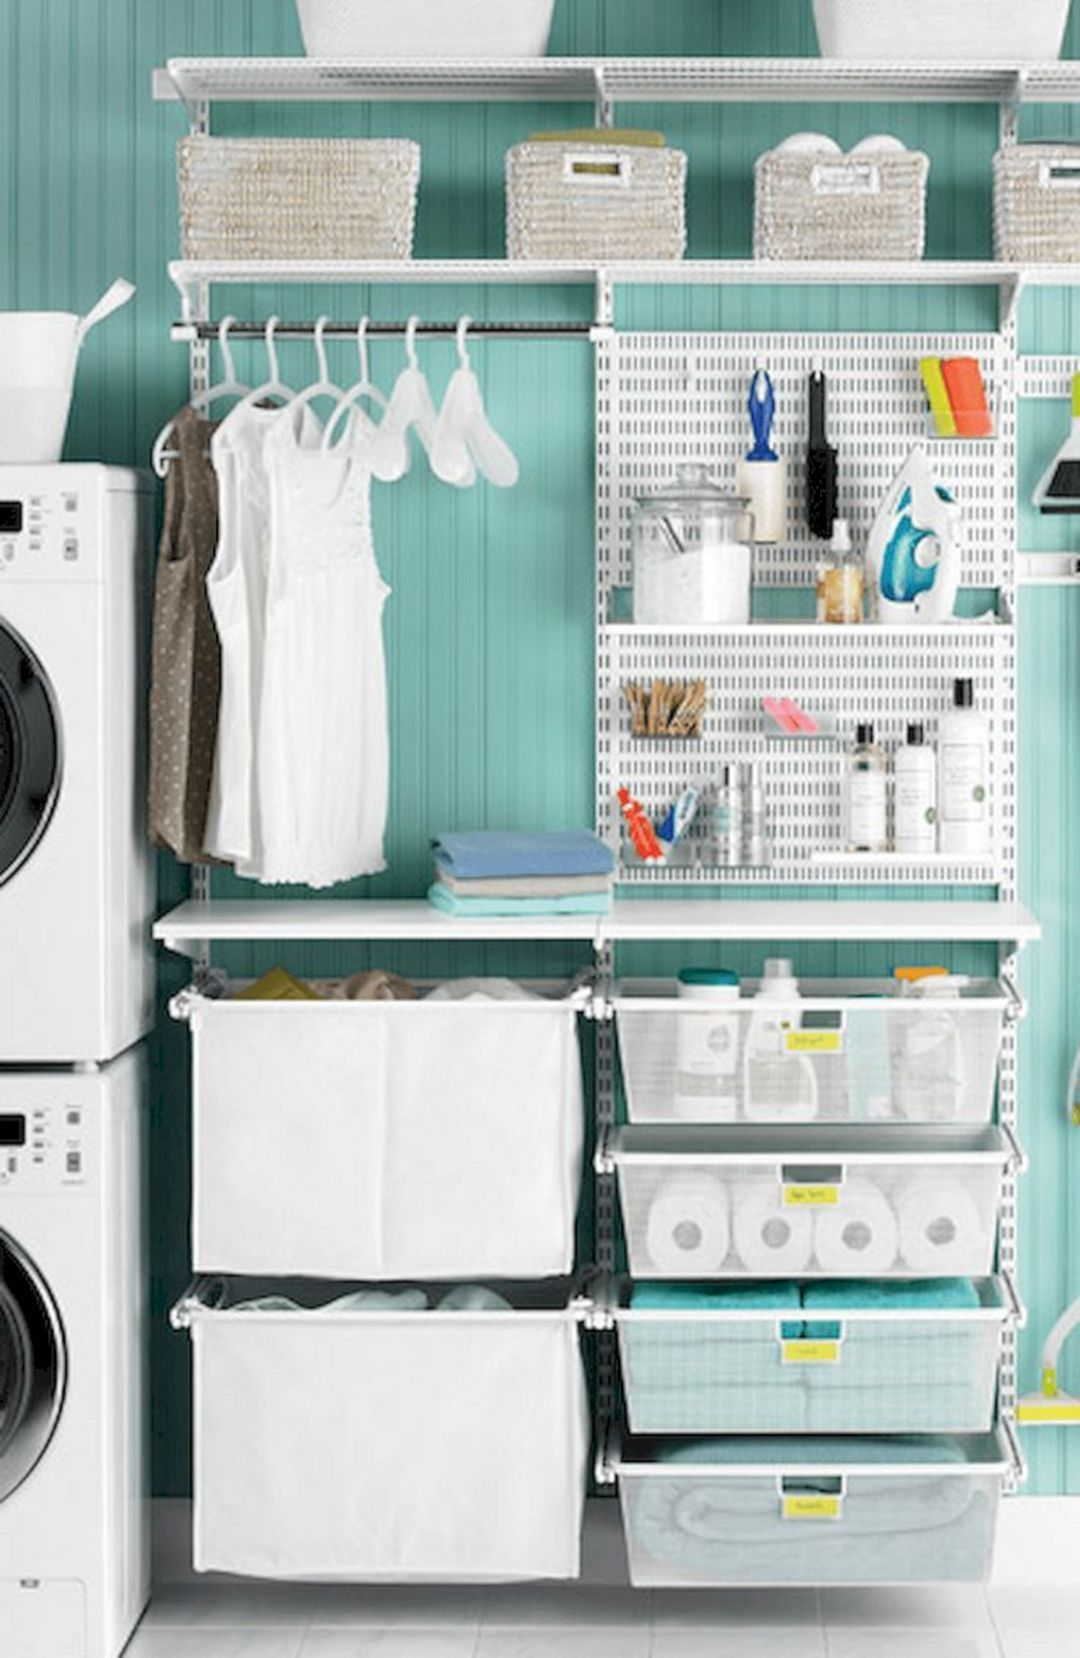 23 Marvelous Laundry Room With Best Storage Ideas  Great Idea 23 Marvelous Laundry Room With Best Storage Ideas